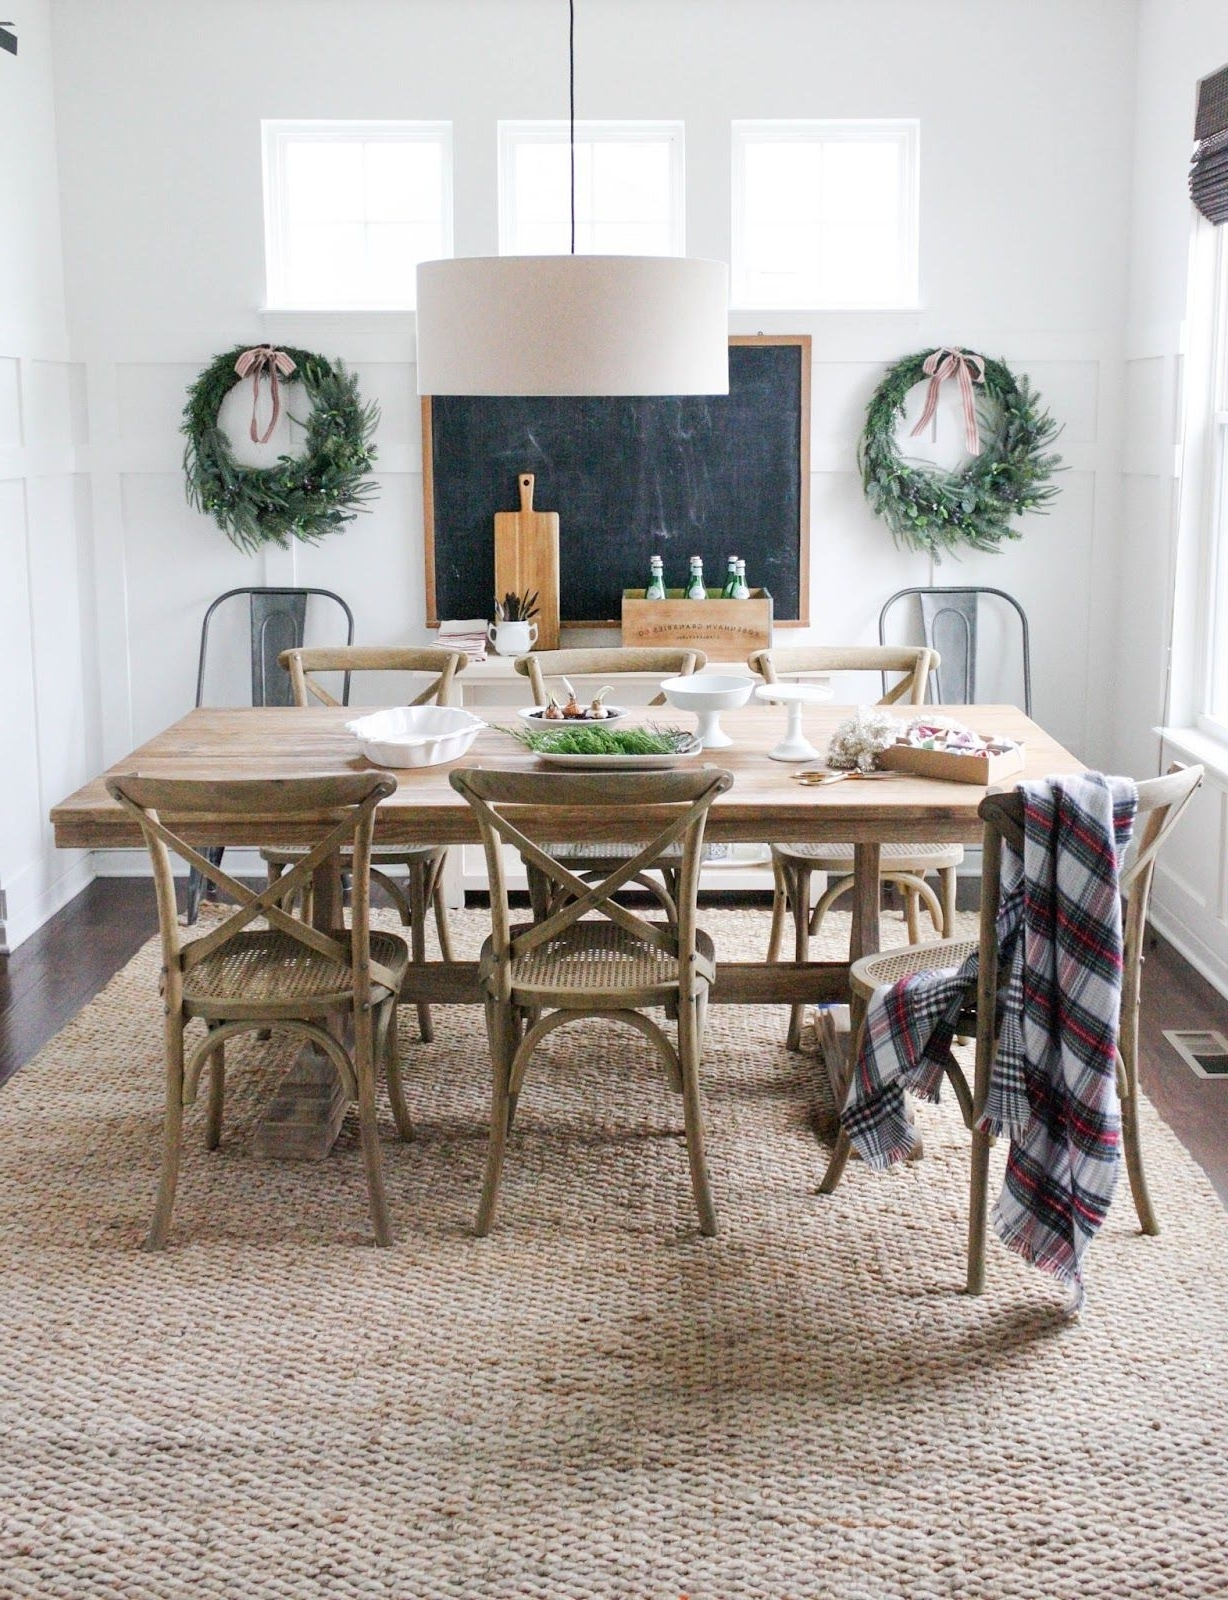 Most Current Market Dining Tables With Regard To Jute Rug From Rugs Usa; Dining Table From World Market; Chairs From (View 15 of 25)